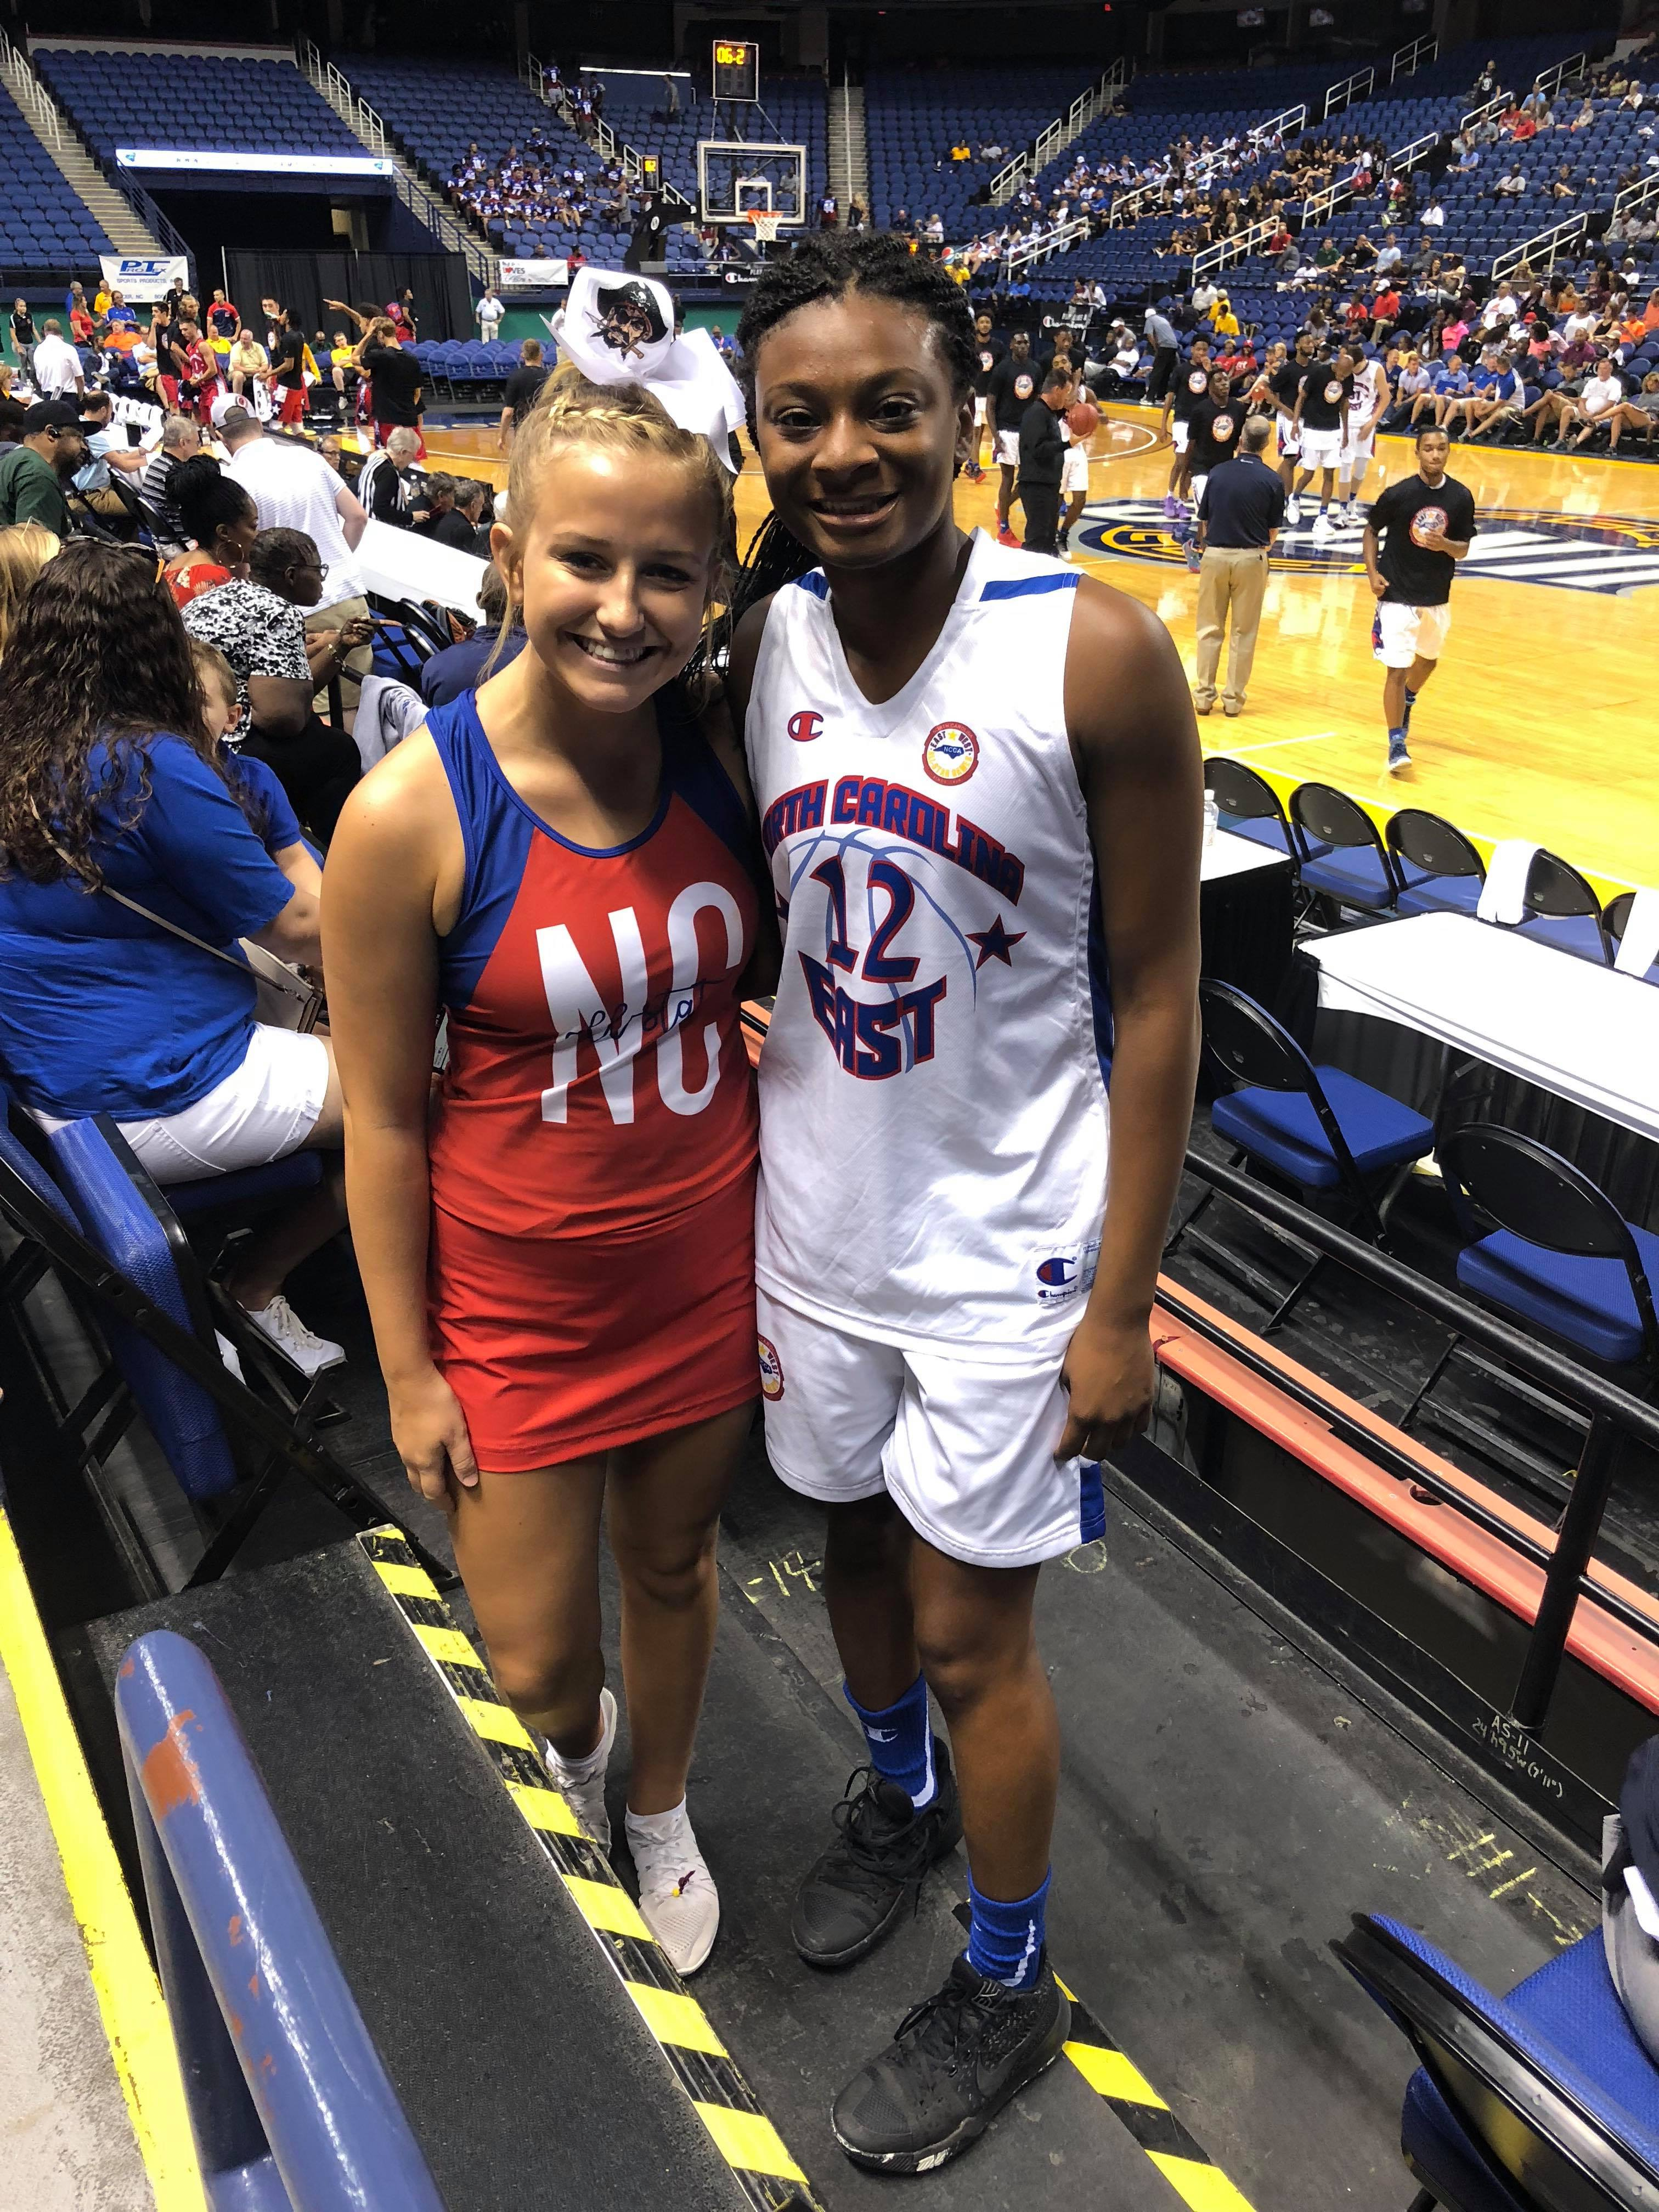 Lady Pirates Representing at the East-West All-Star Games